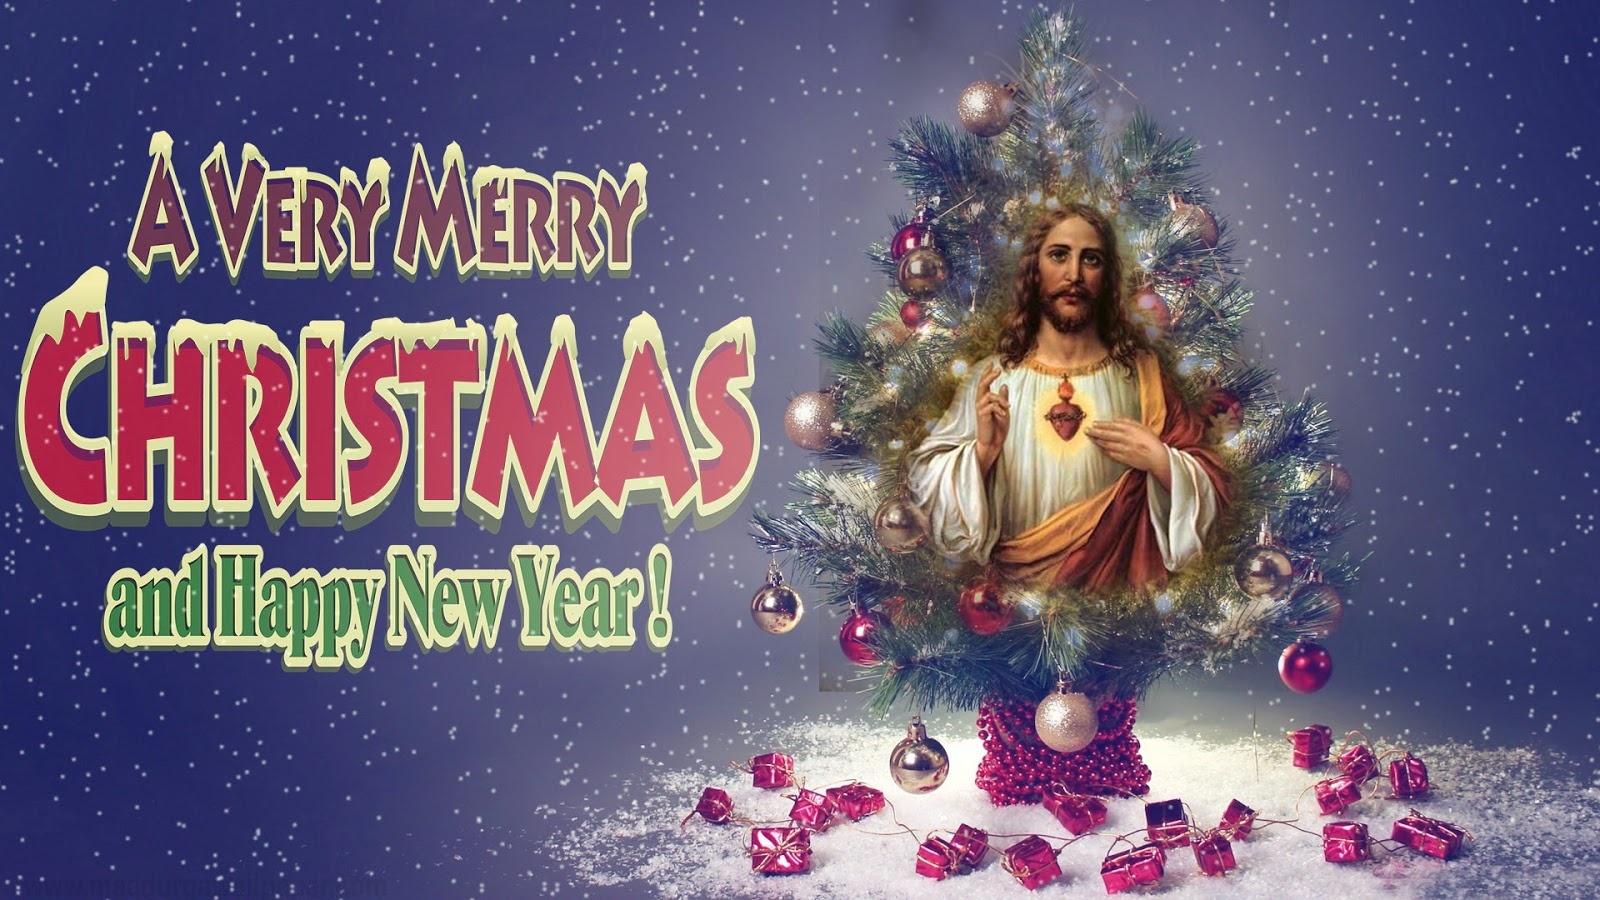 Free Download Beautiful Merry Christmas Jesus Christ HD ... | 1600 x 900 jpeg 326kB